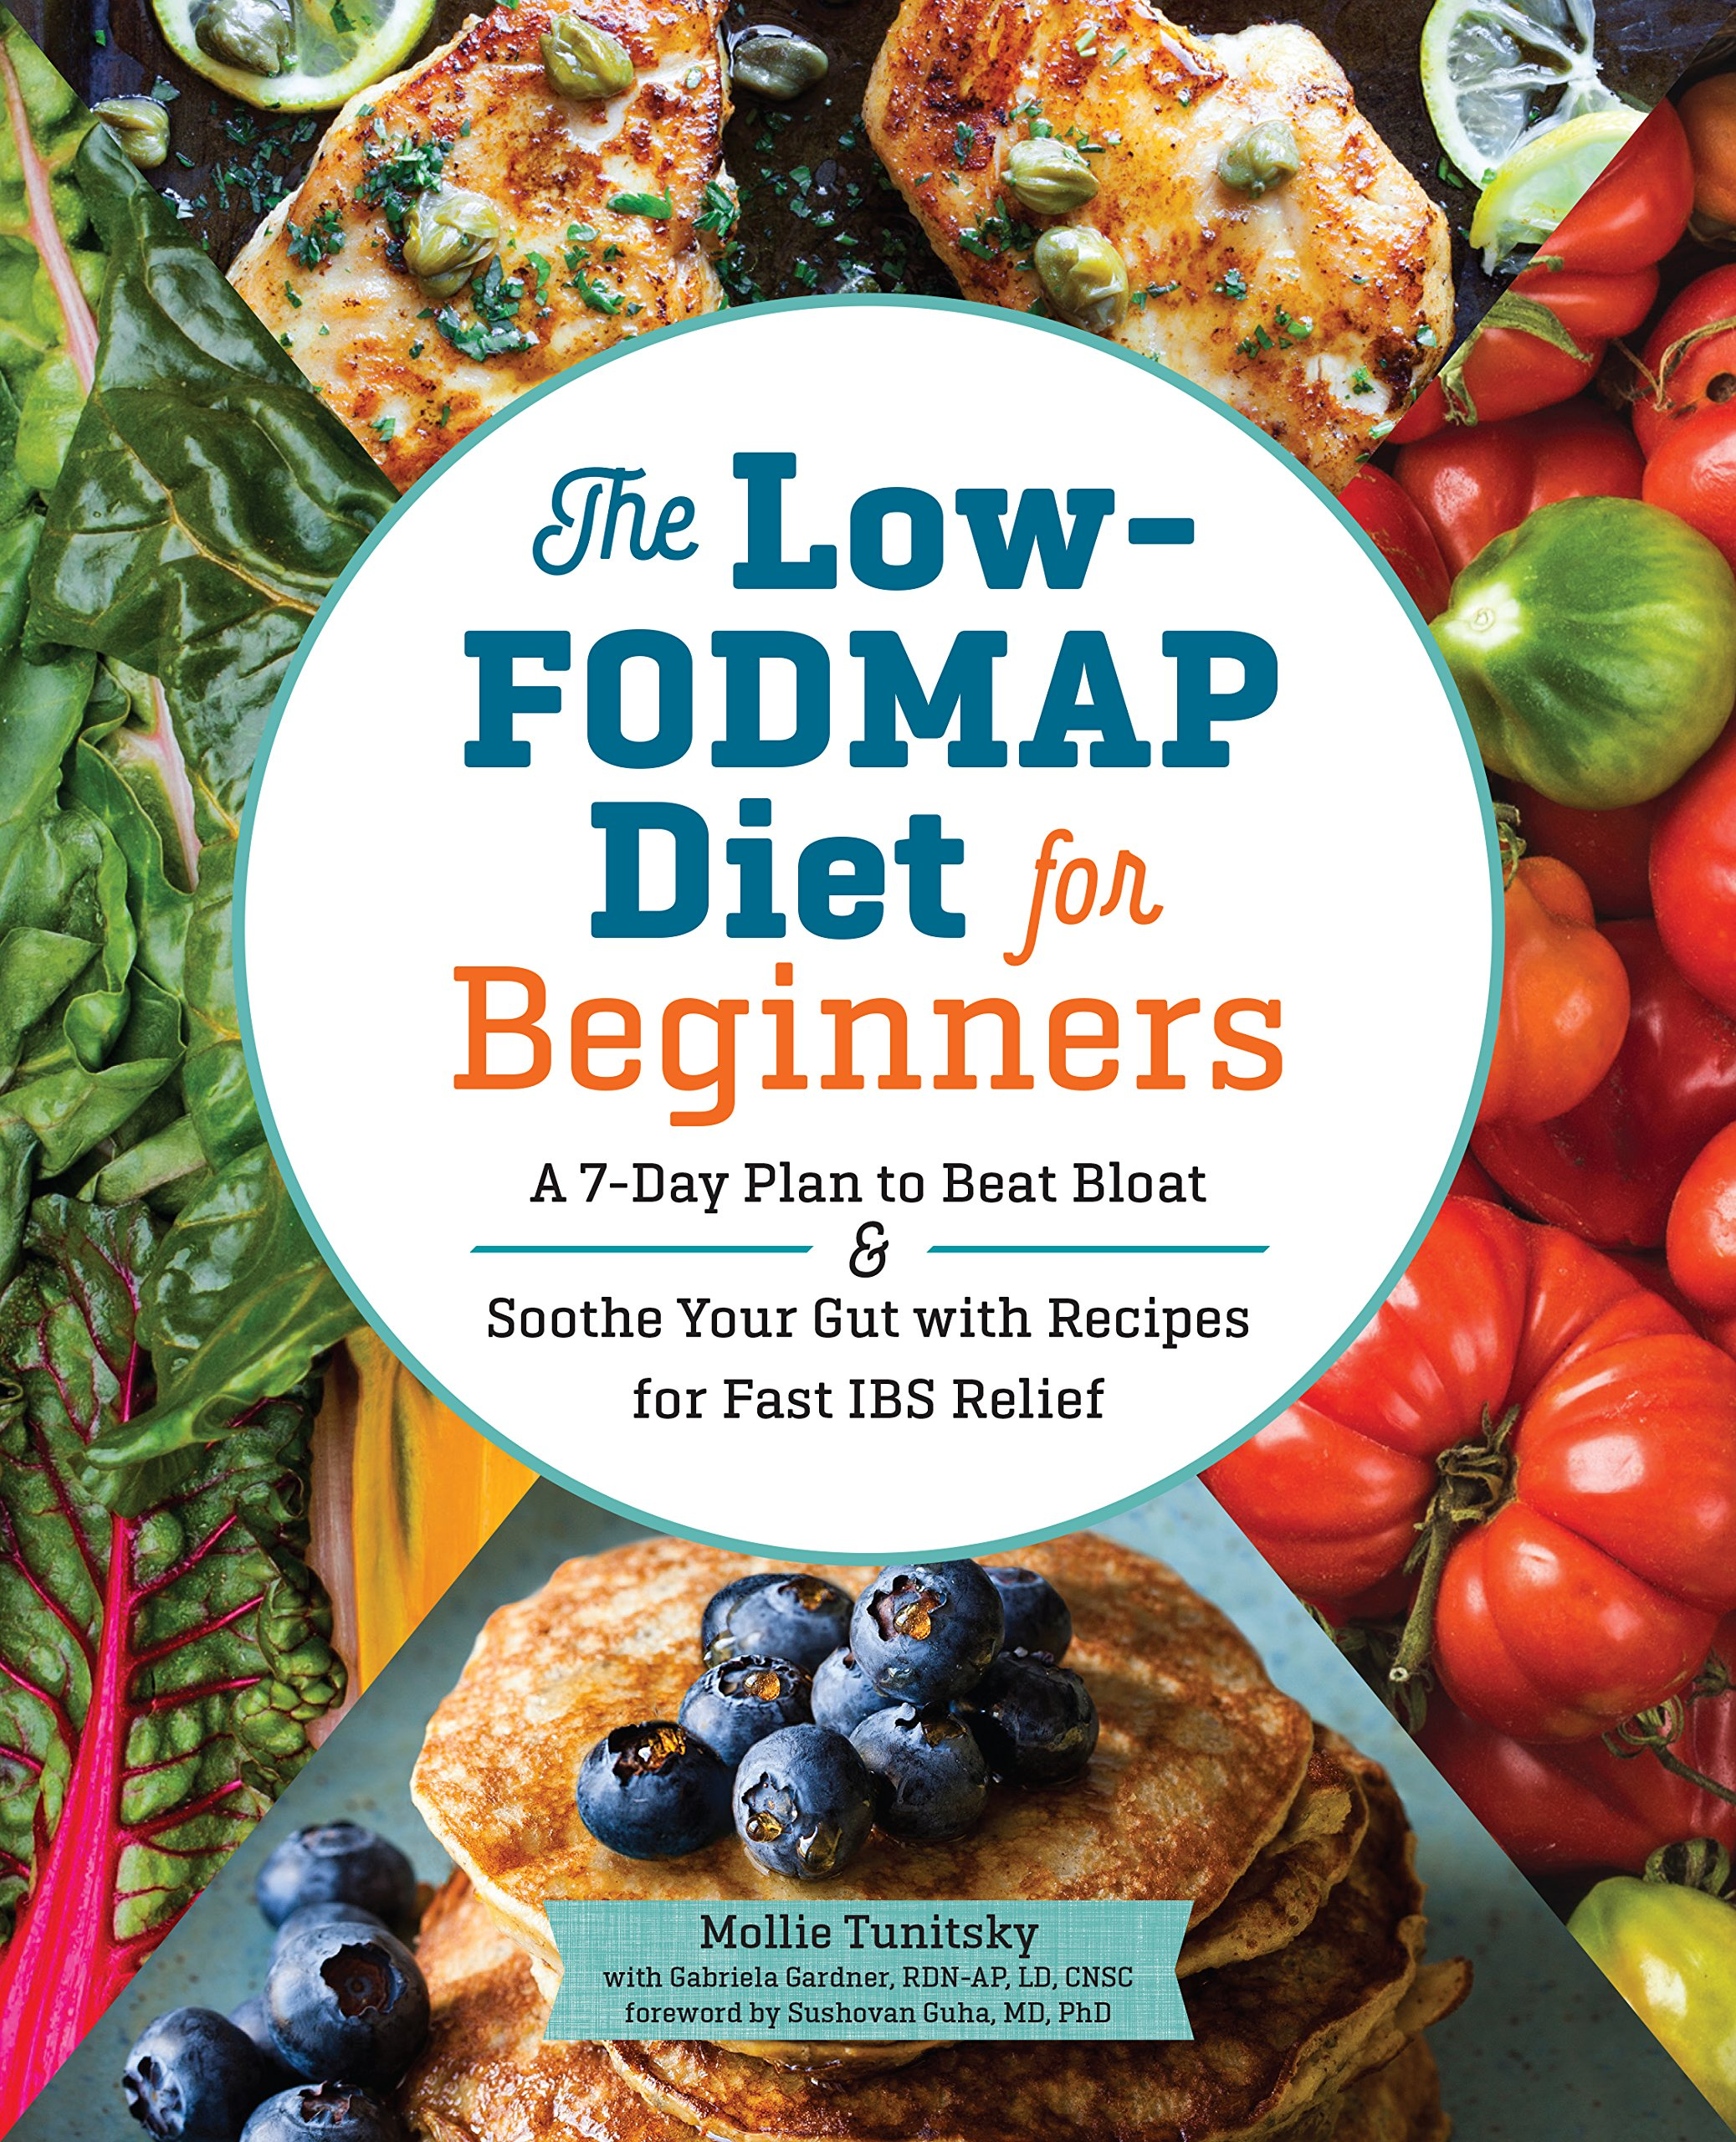 Low FODMAP Diet Beginners Soothe Recipes product image